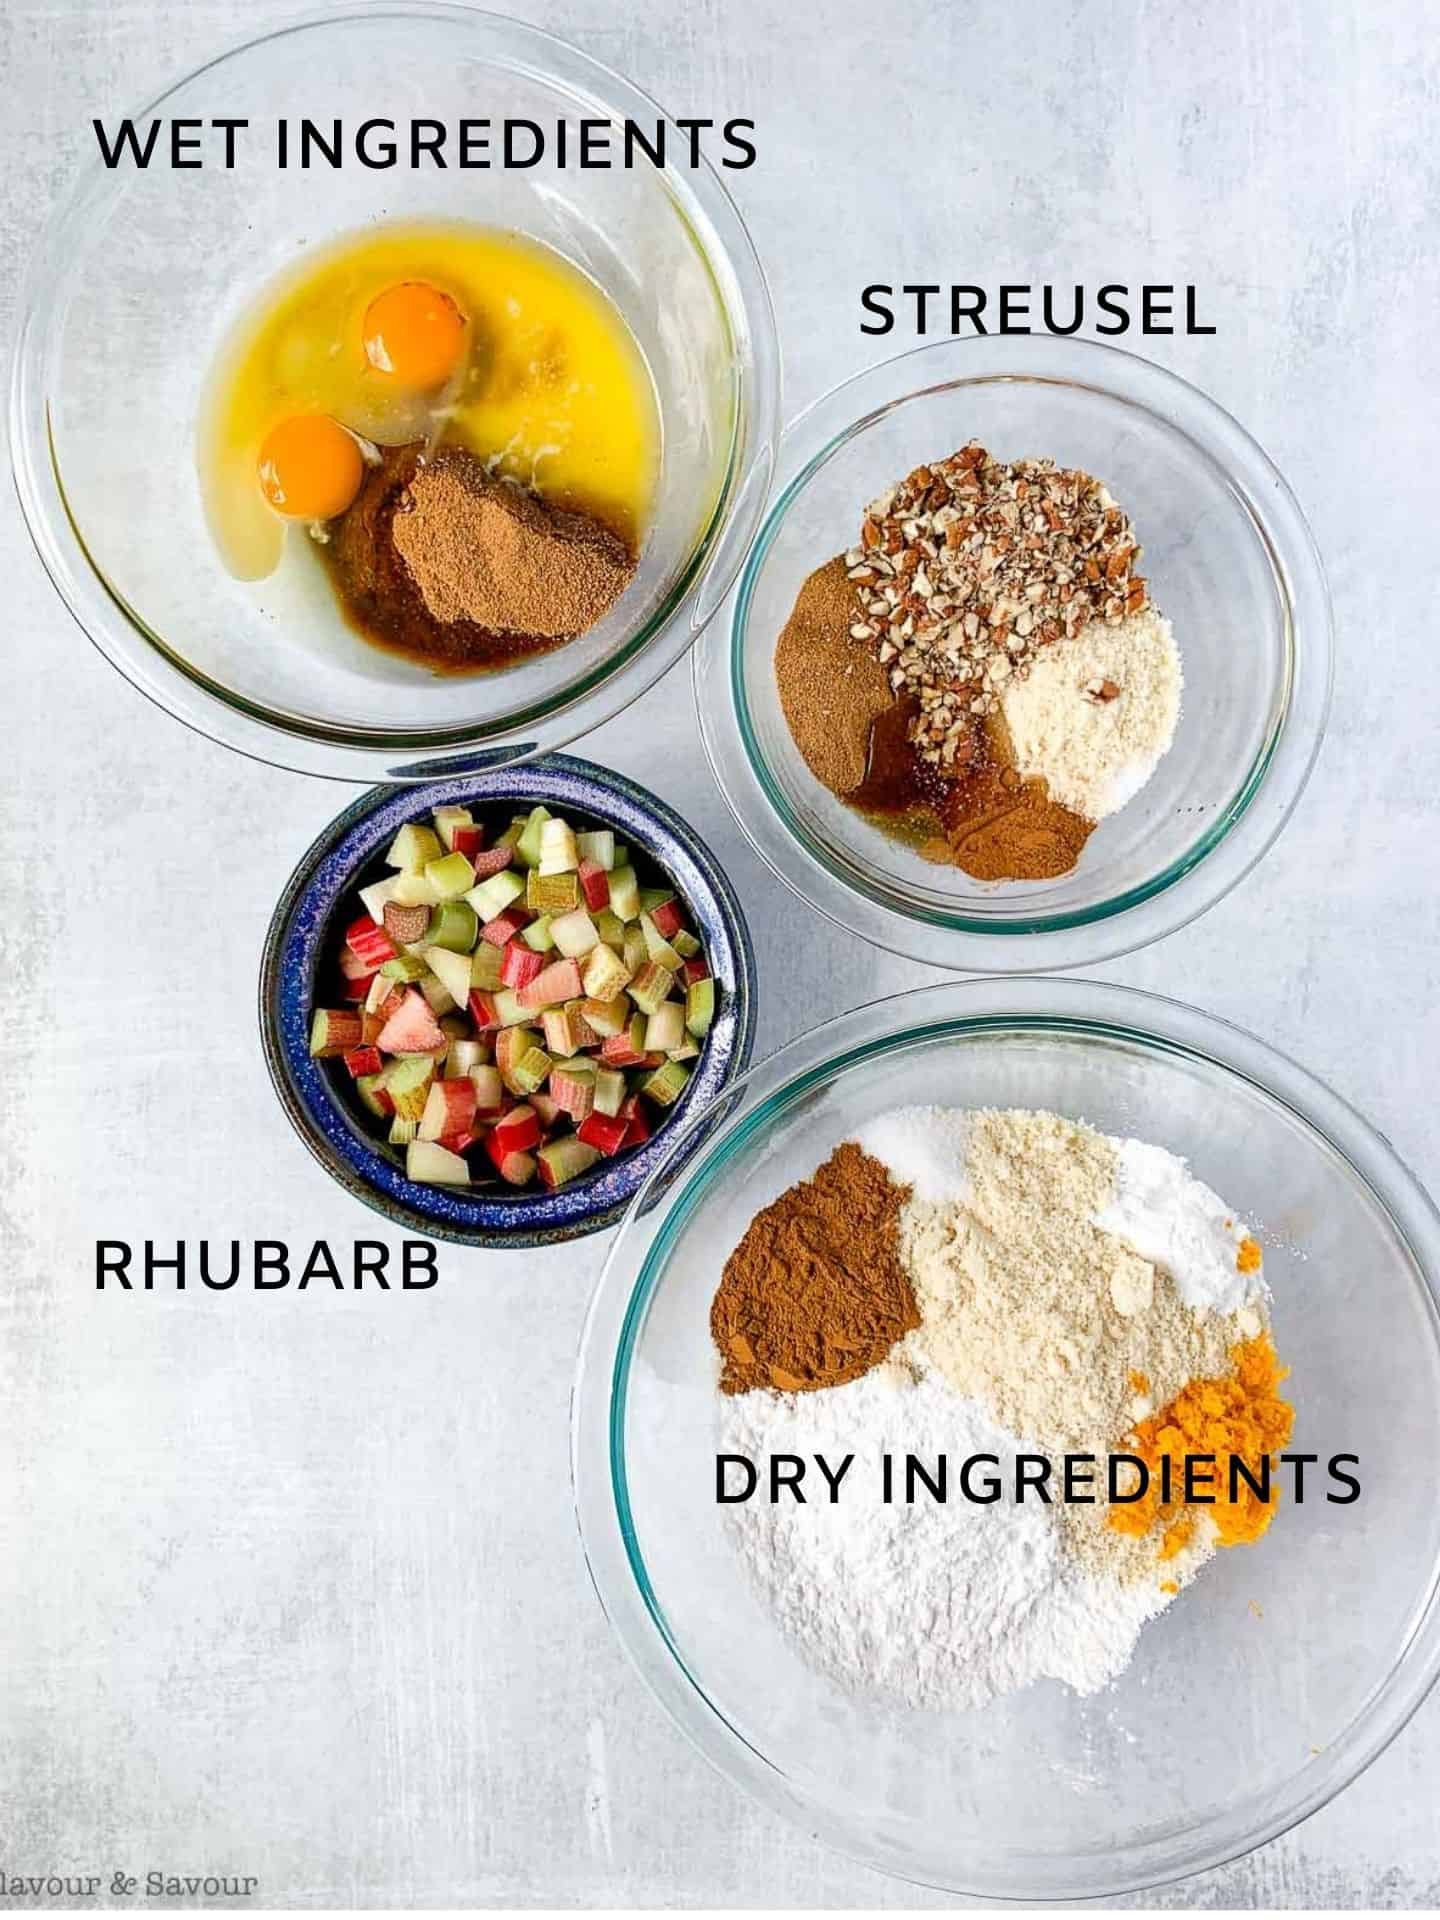 Ingredients for Gluten-free Rhubarb Streusel Muffins in bowls